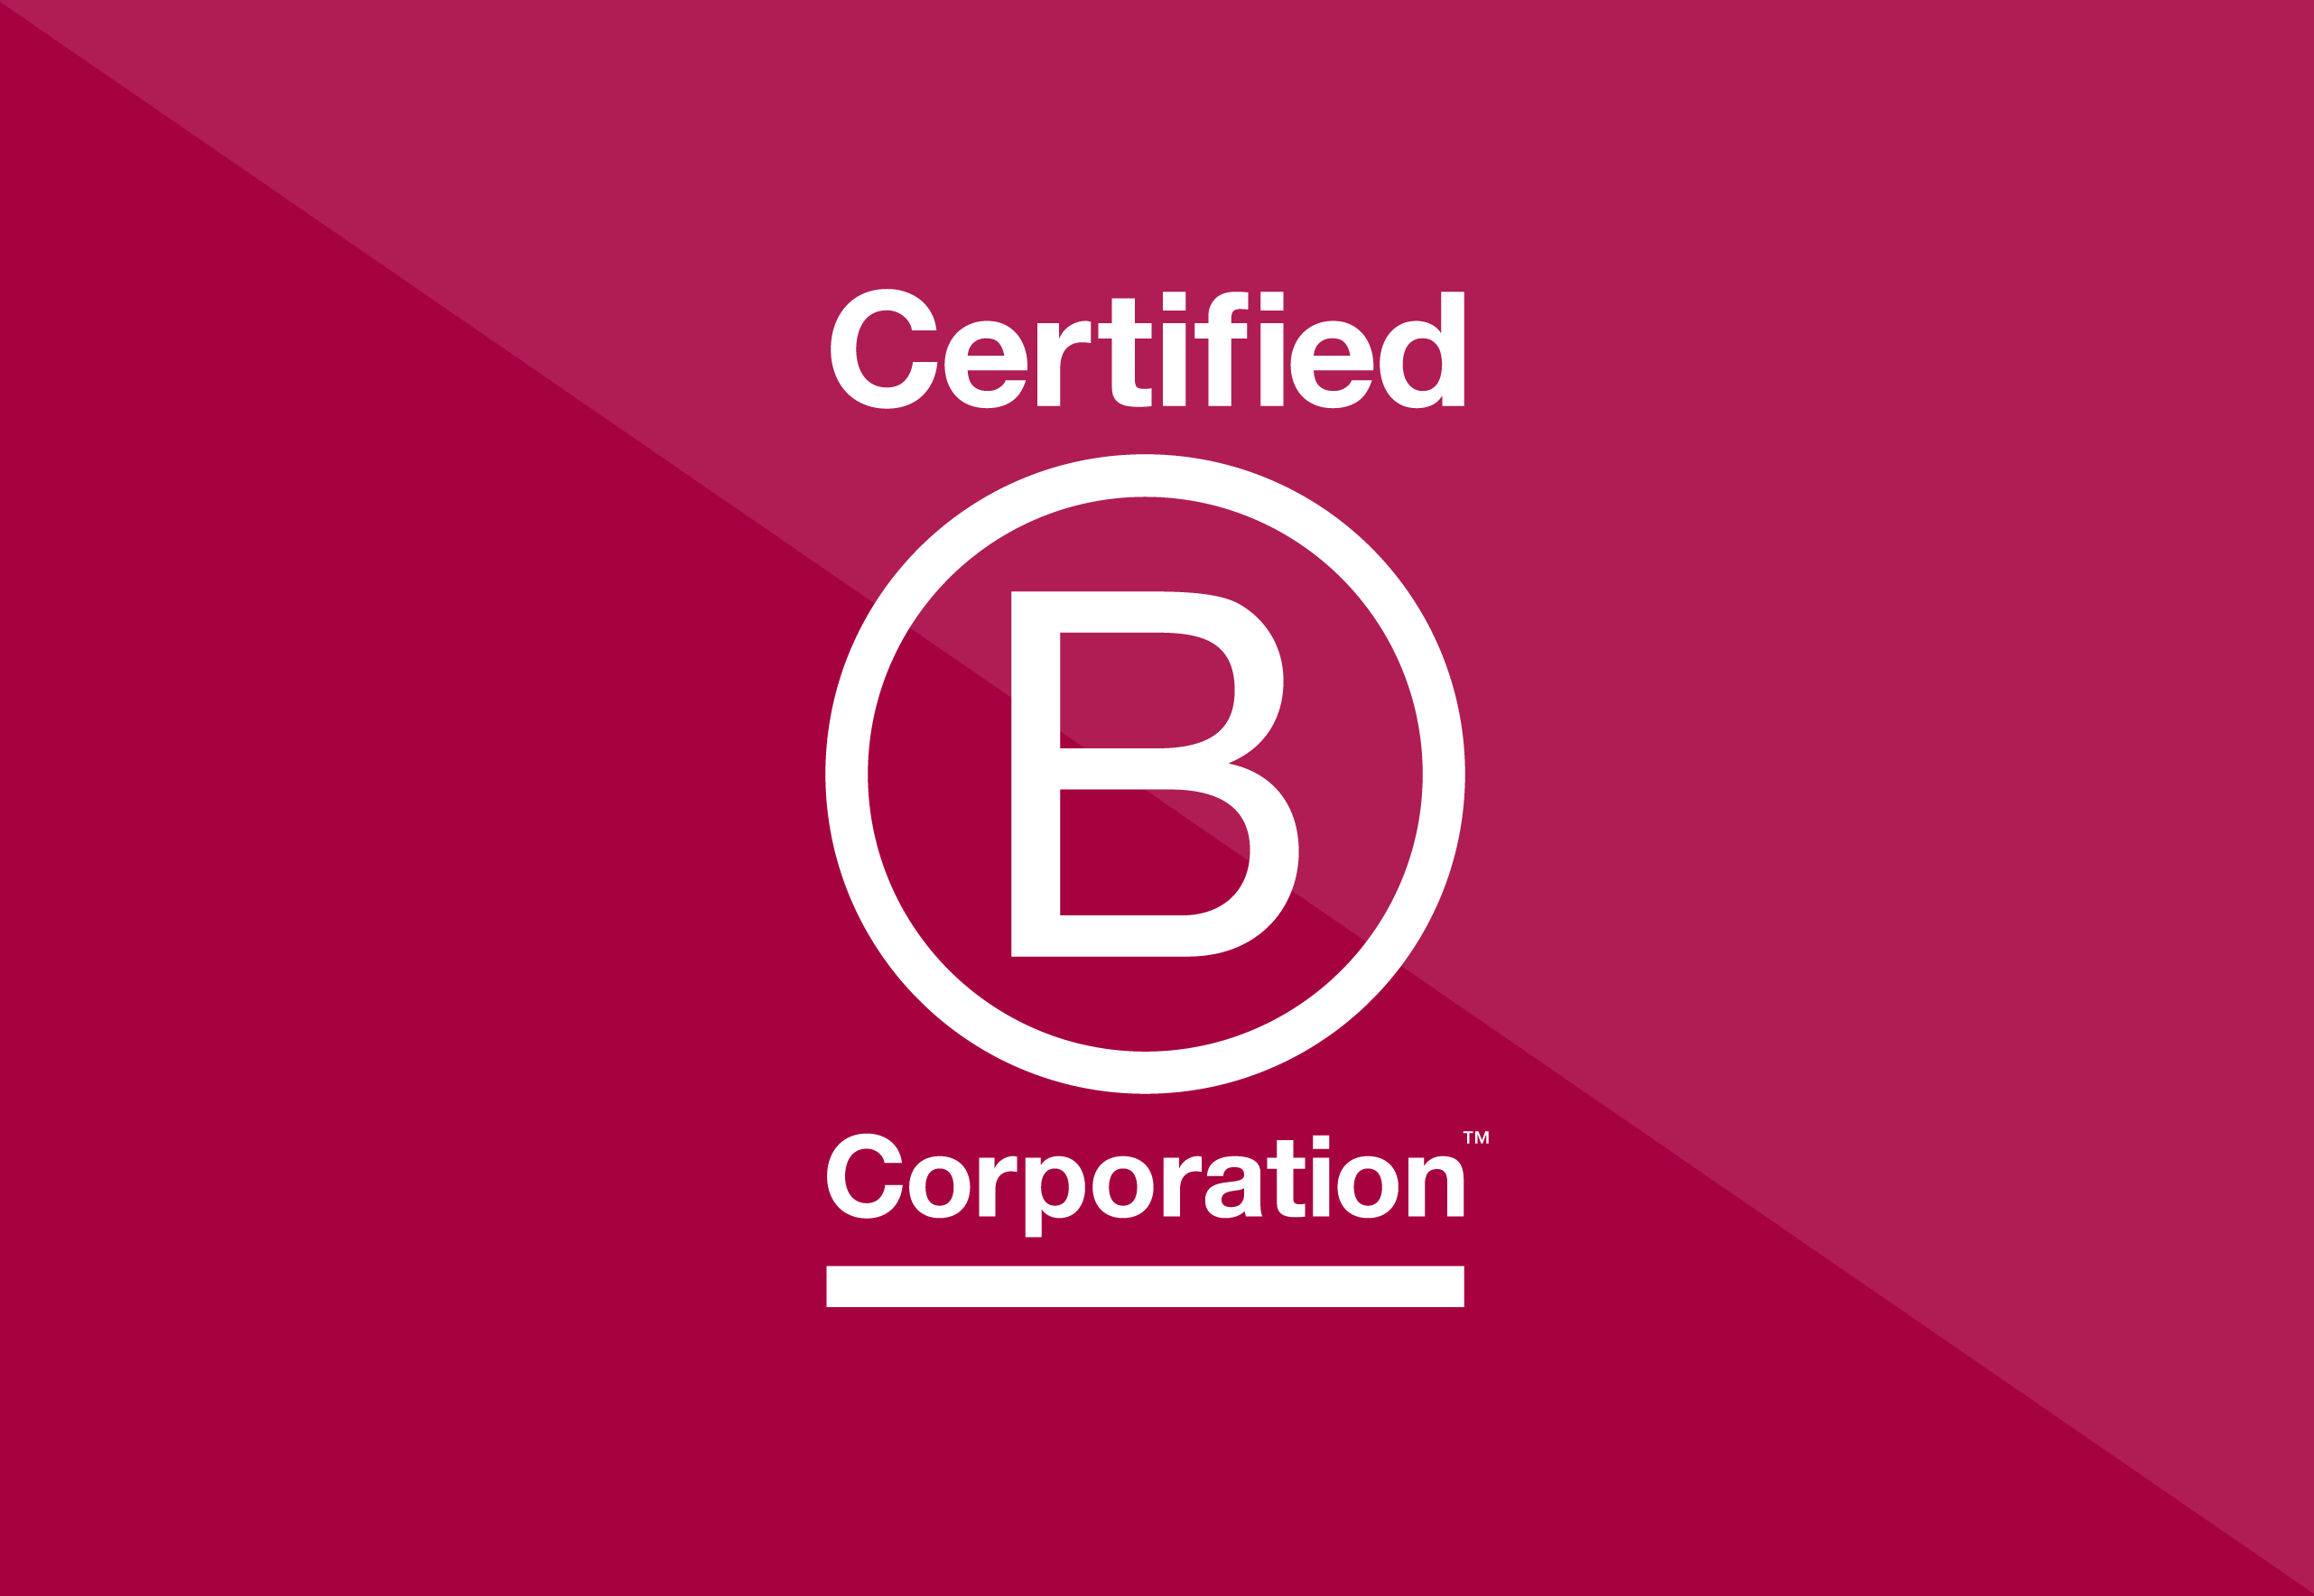 Flipside Creative is a Certified B Corporation